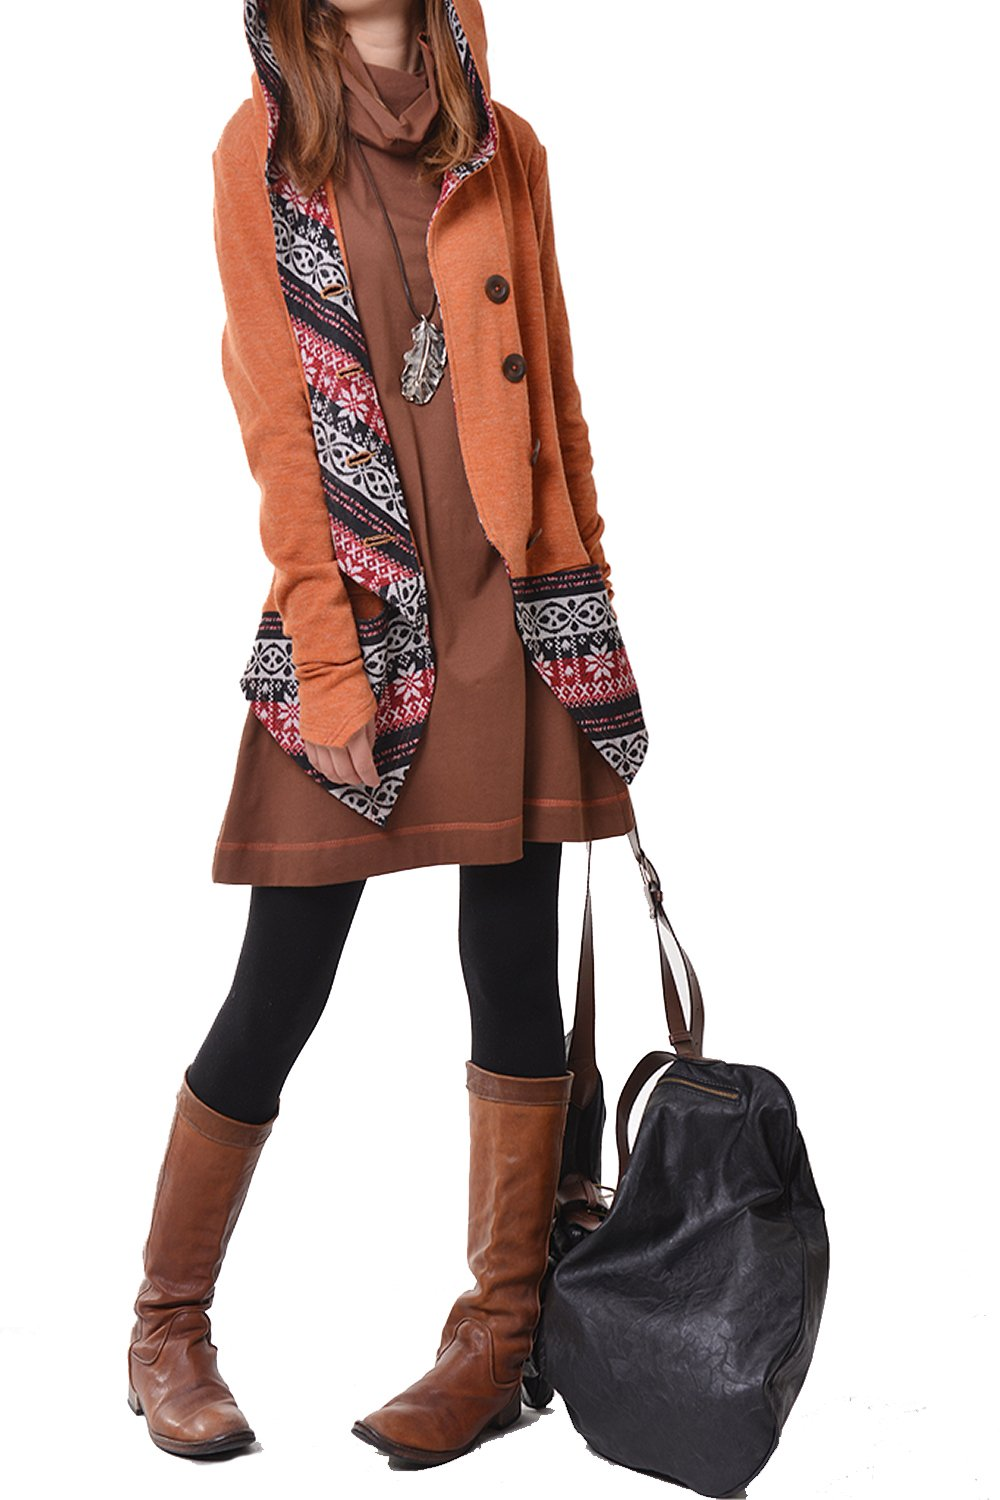 Idea2lifestyle Women's Hoodie Cardigan and Tunic Dress Set Orange and Brown (L(US 14))